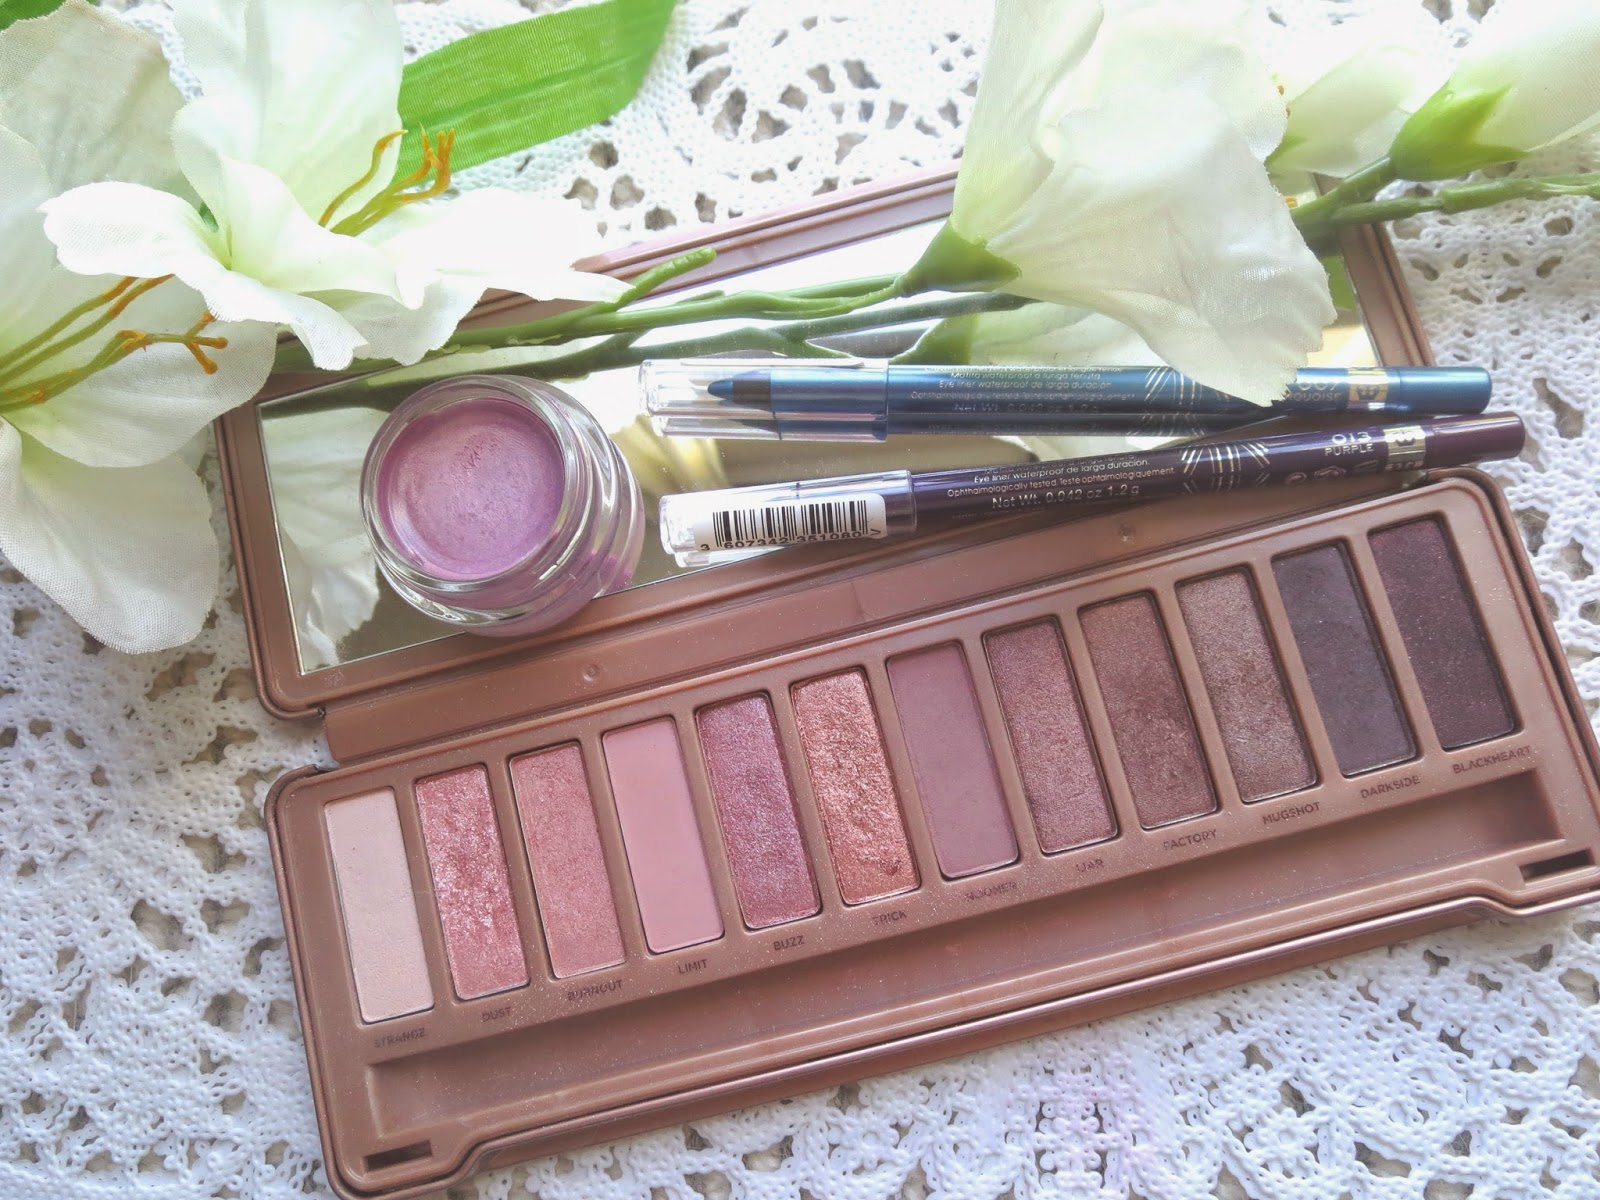 a picture of spring favorites for eyes ; maybelline color tattoo Hibiscus Heartbreaker, Naked 3 palette, Rimmel Scandaleyes Kohl purple, turquoise